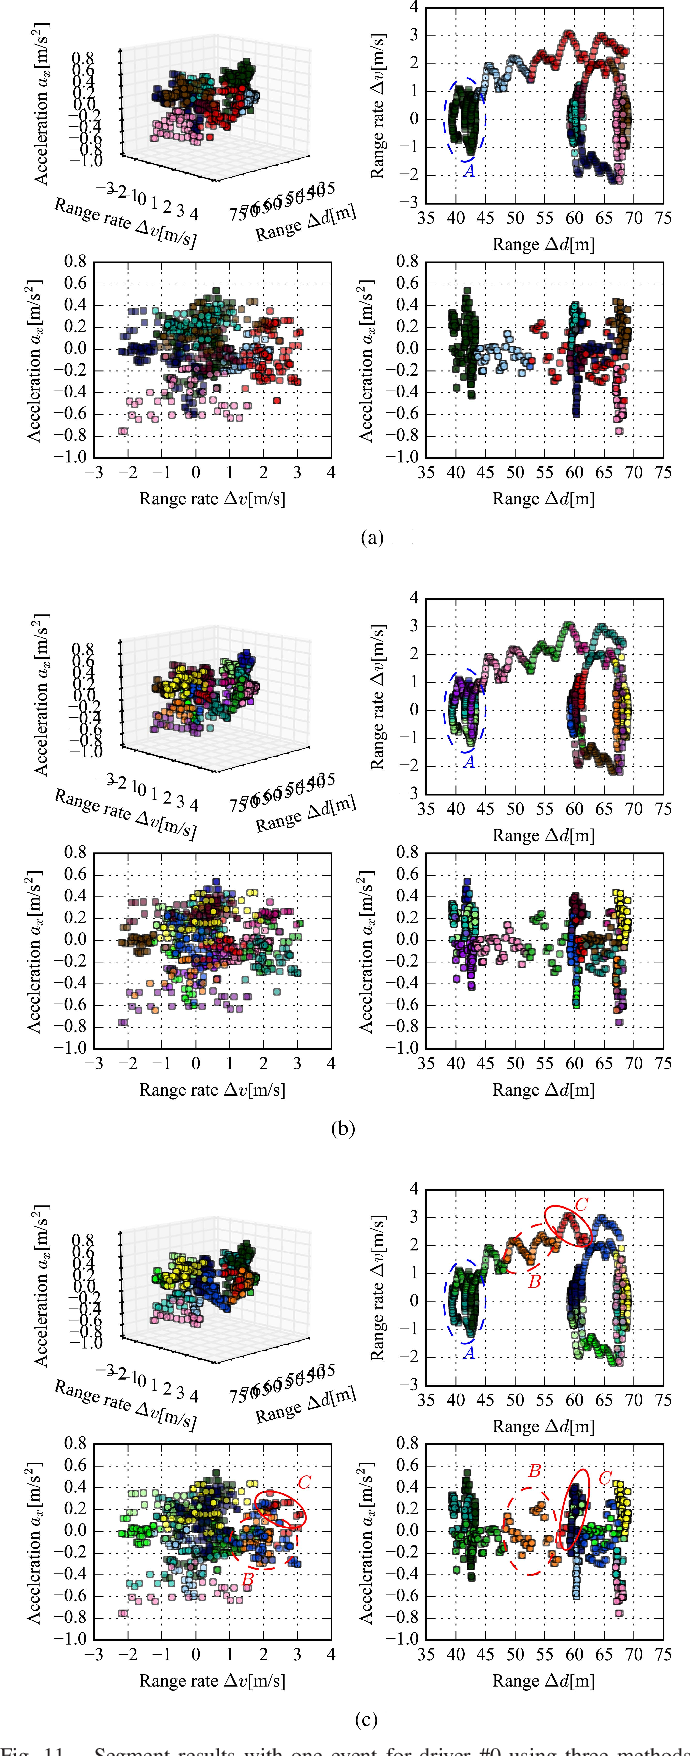 Figure 3 for Driving Style Analysis Using Primitive Driving Patterns With Bayesian Nonparametric Approaches